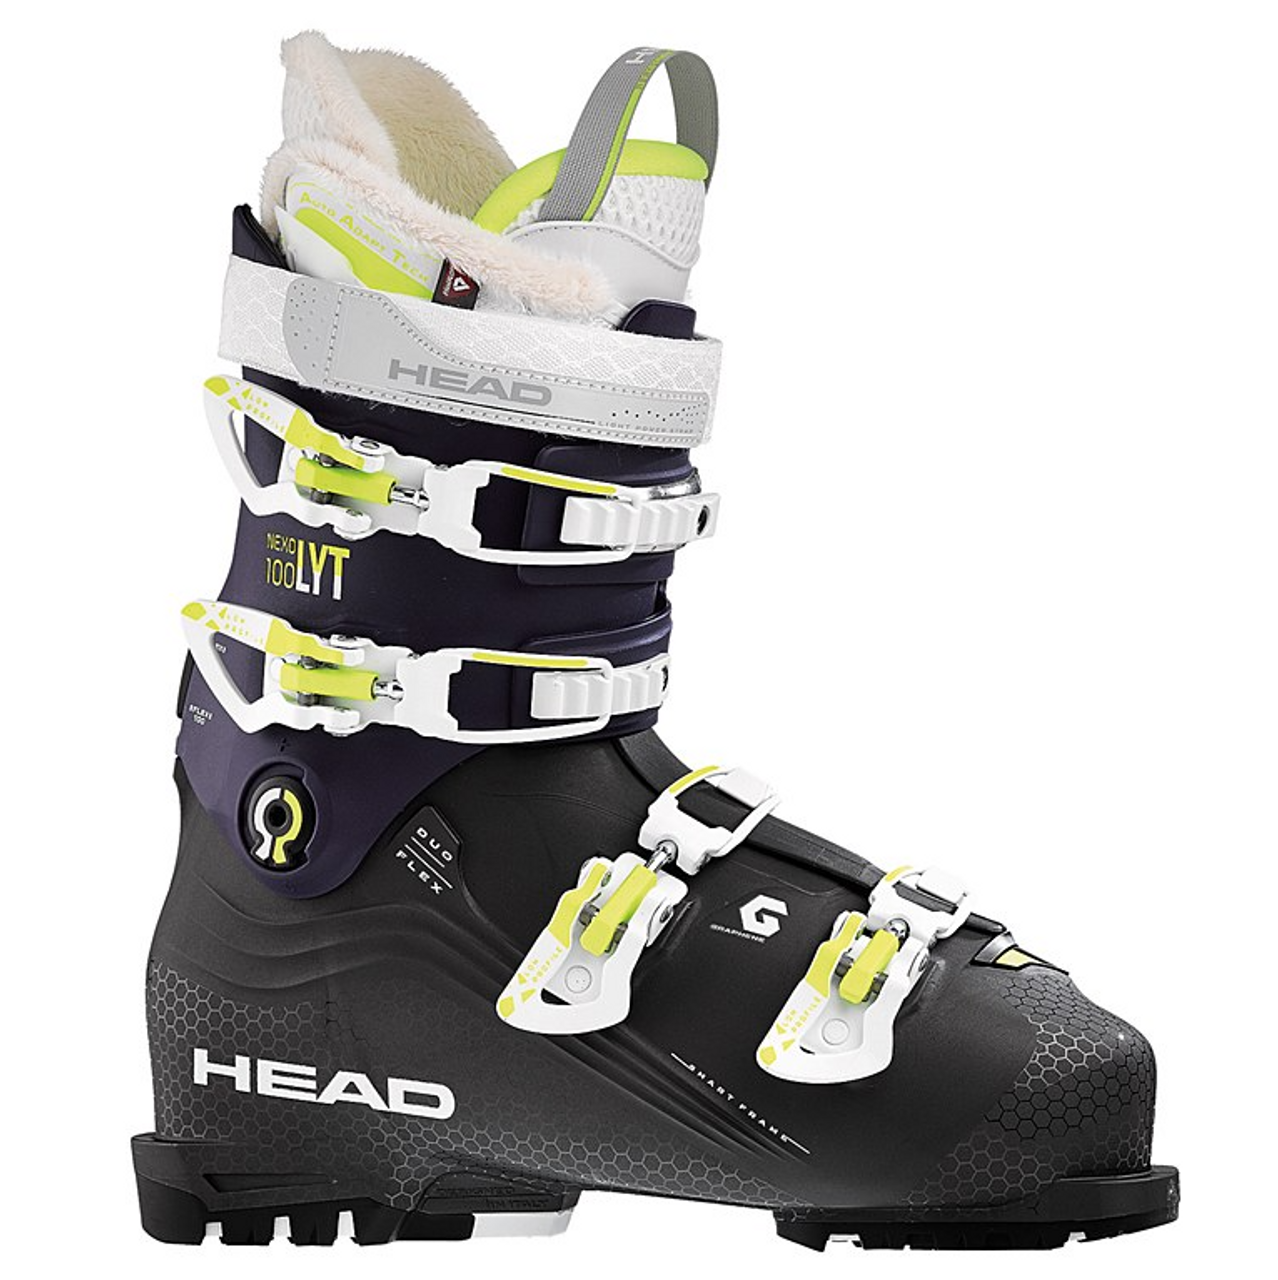 36ca92c1cd Head Women's Nexo Lyt 100 Ski Boot 2019